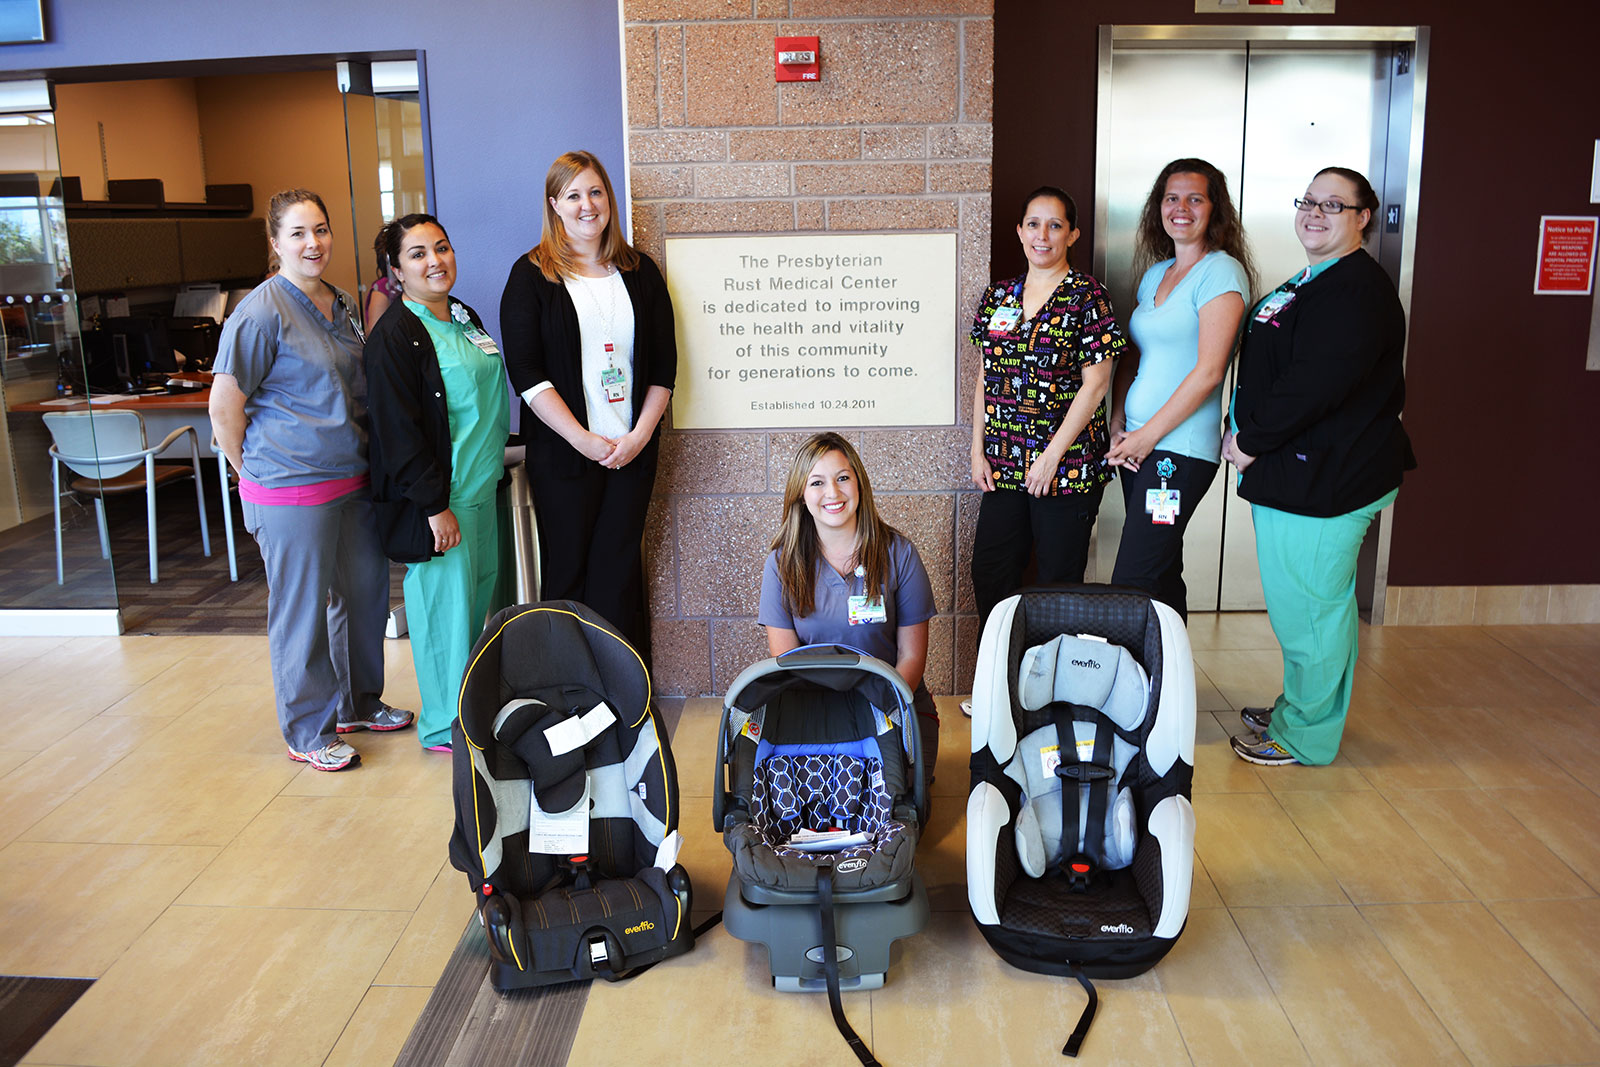 Child Safety Seat Distribution Program, How Do I Get A Free Car Seat From Wic